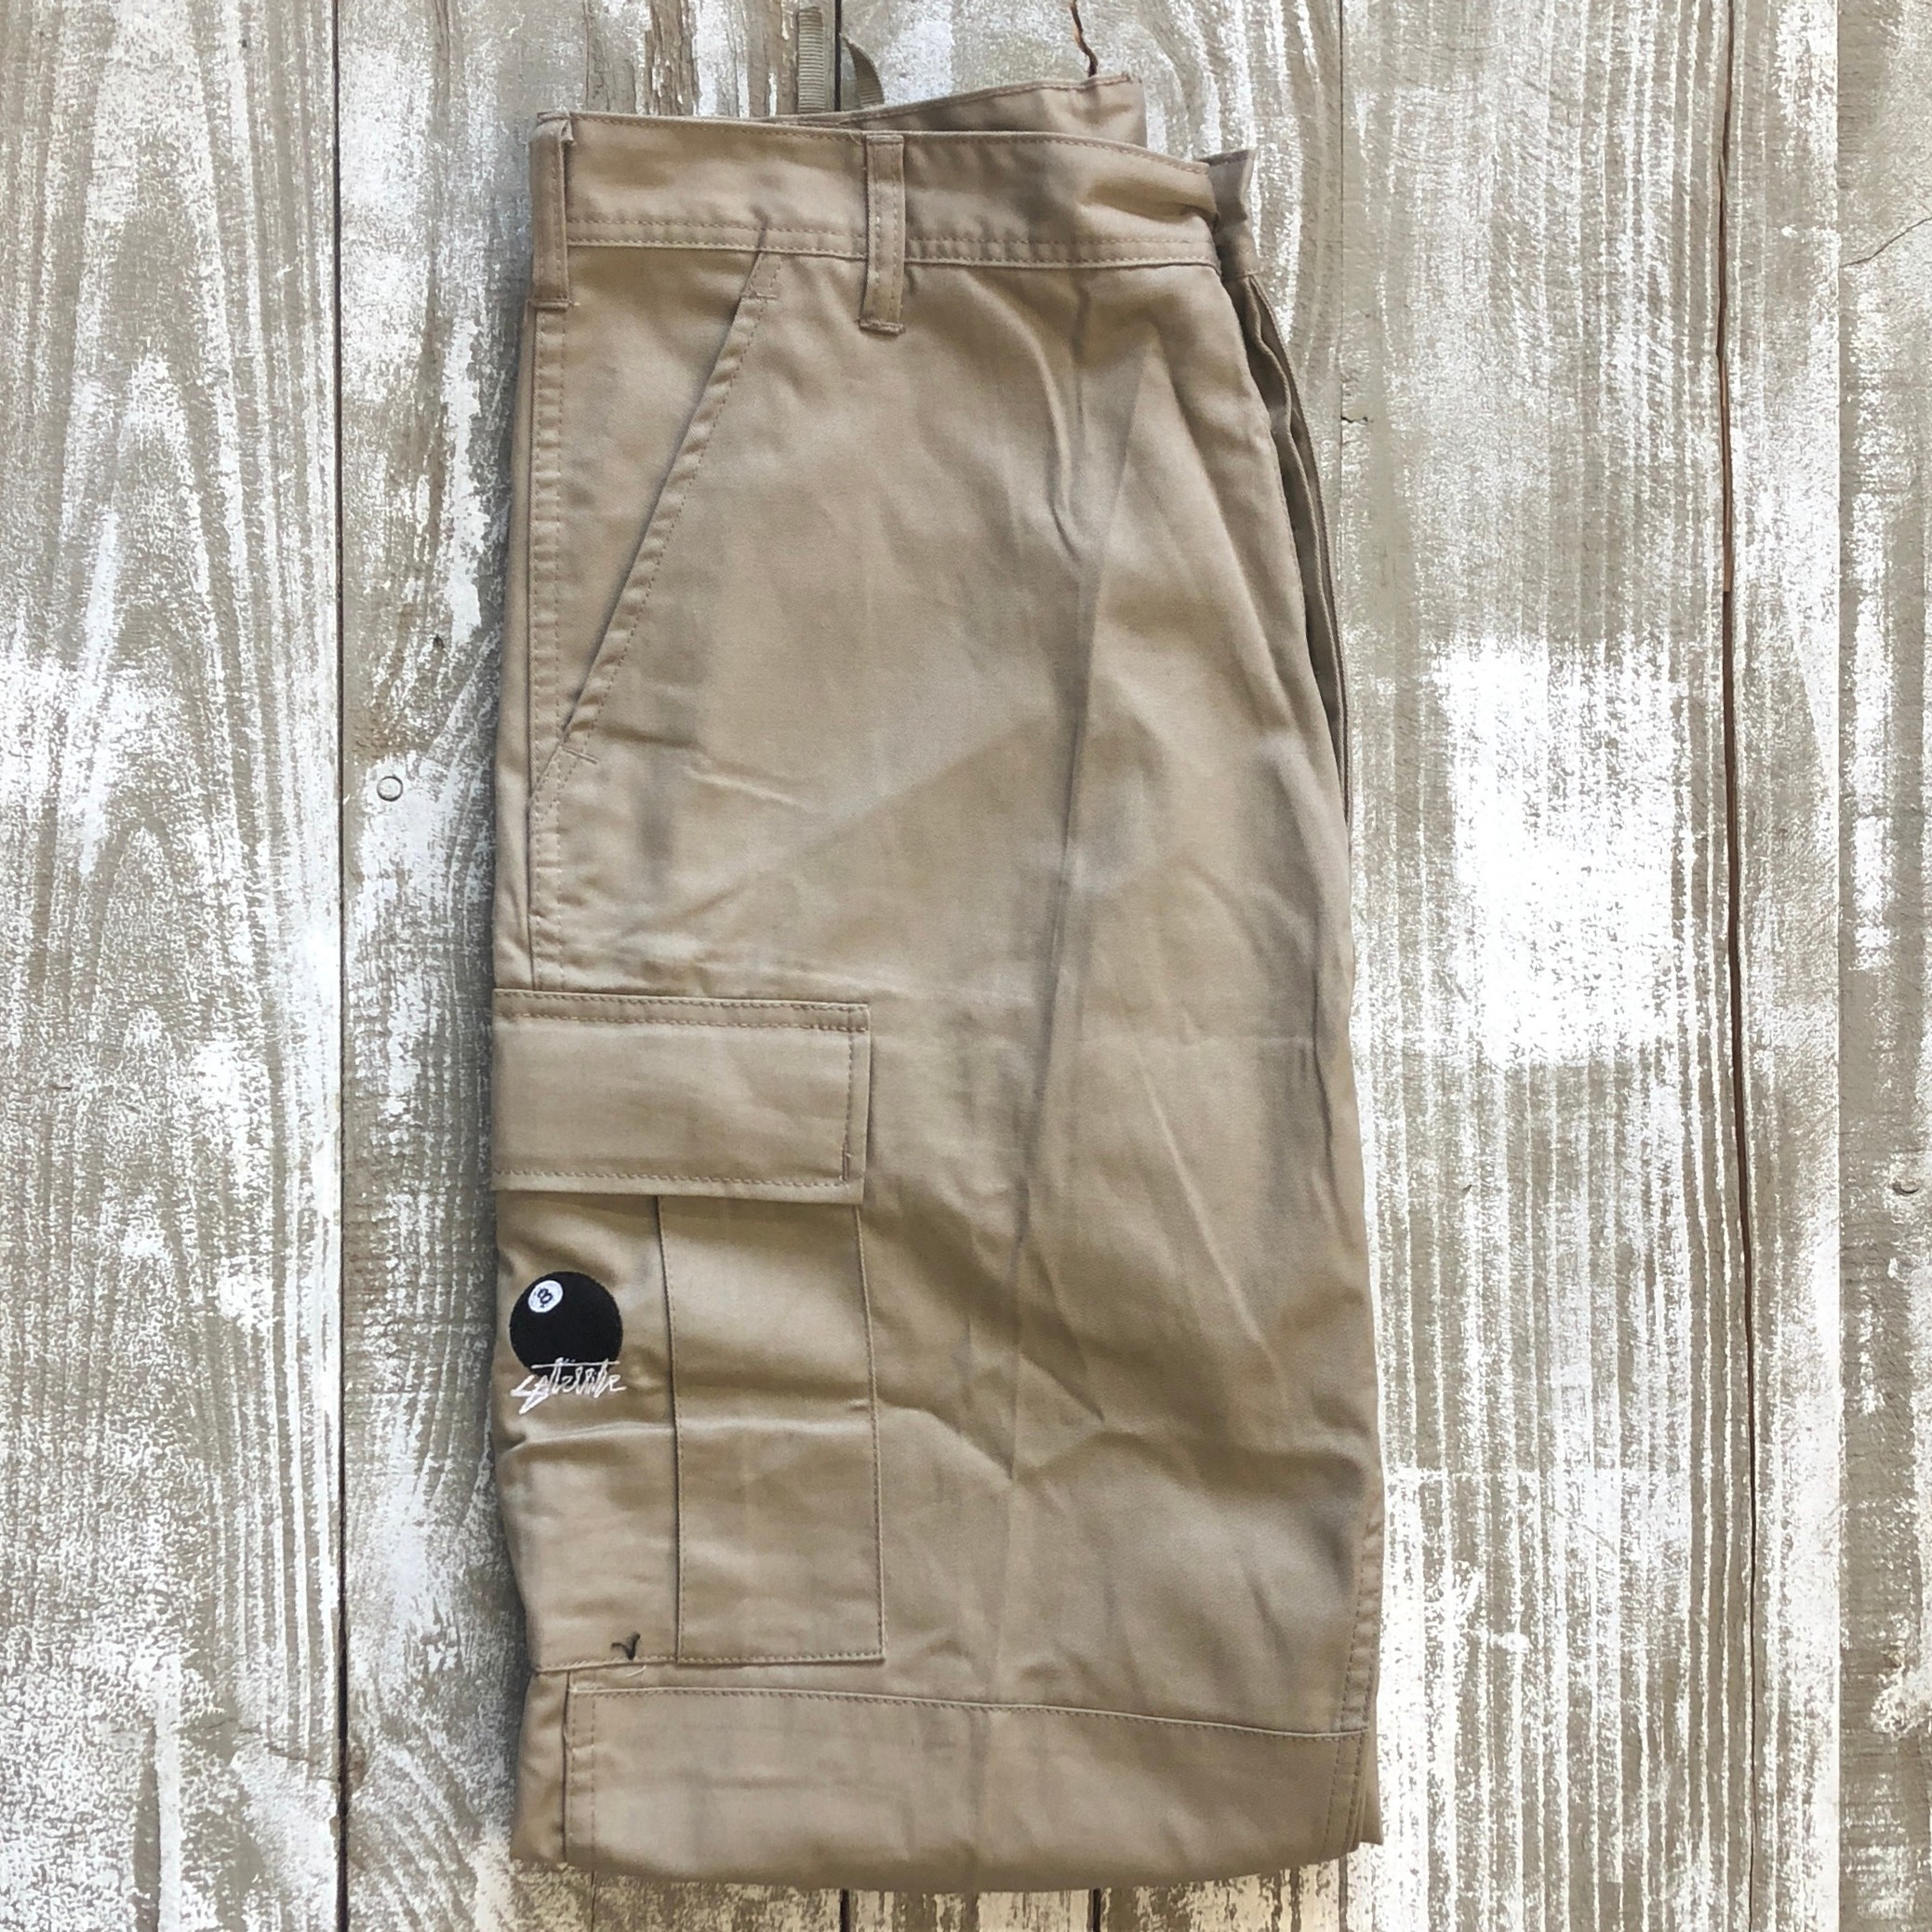 Satellite Battle Dress Uniform Pant (kahki)